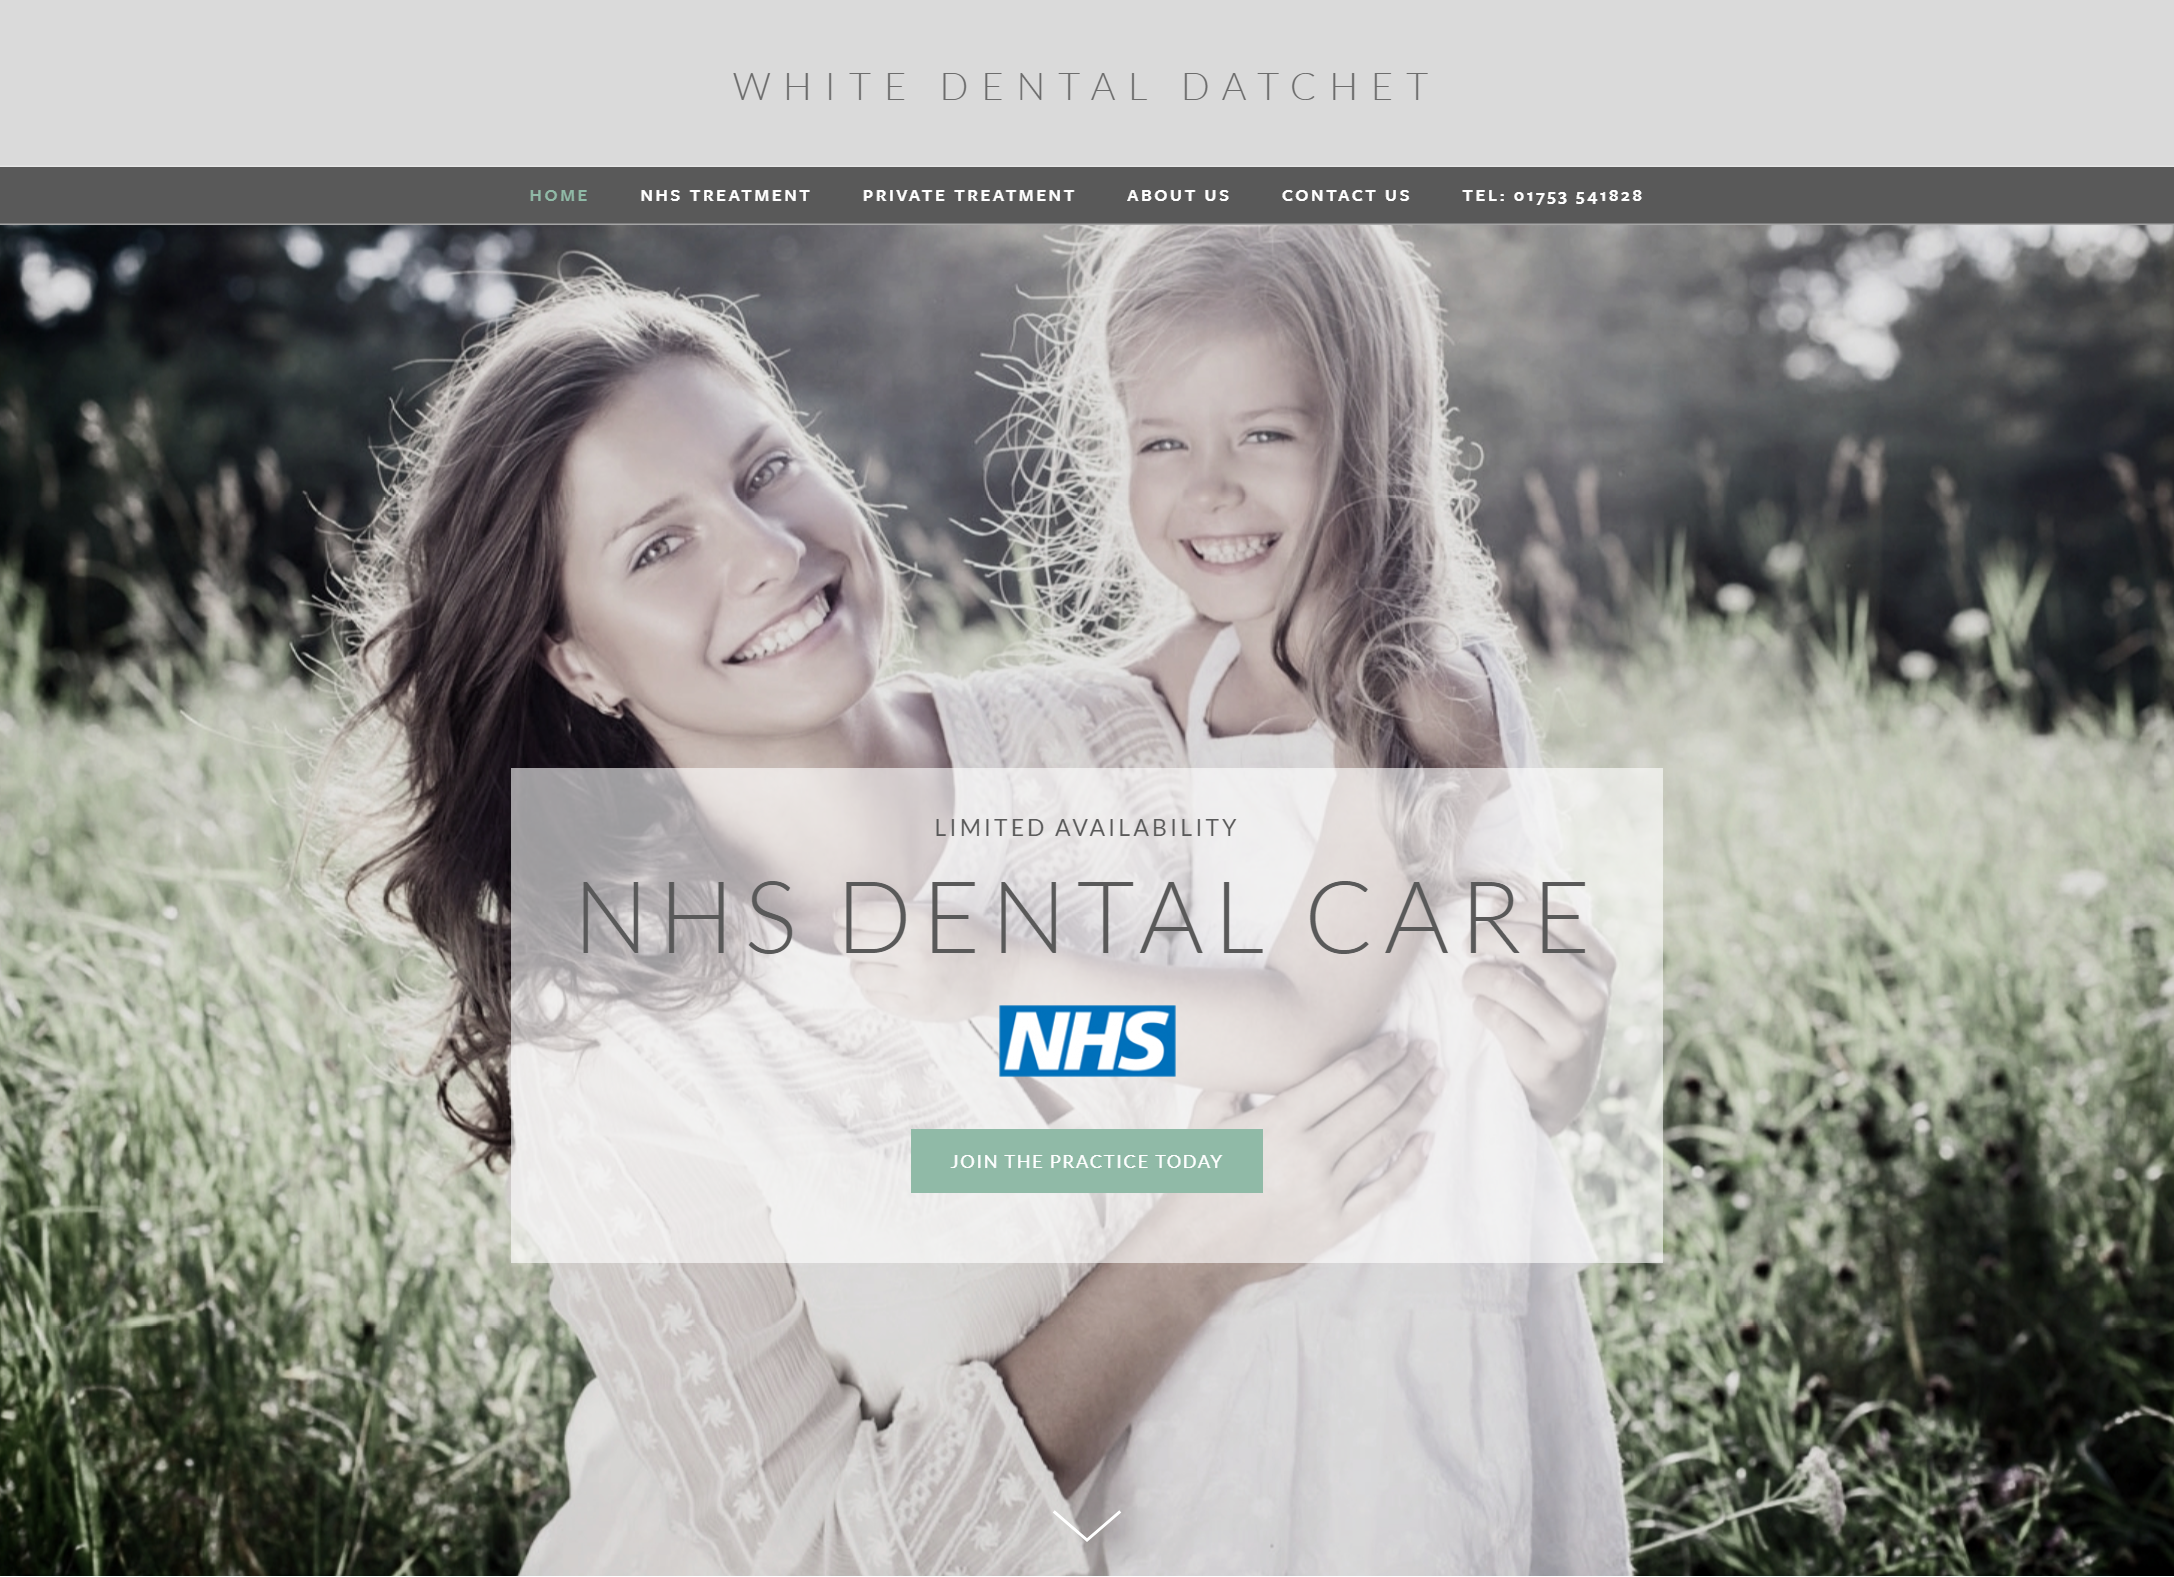 White Dental Datchet